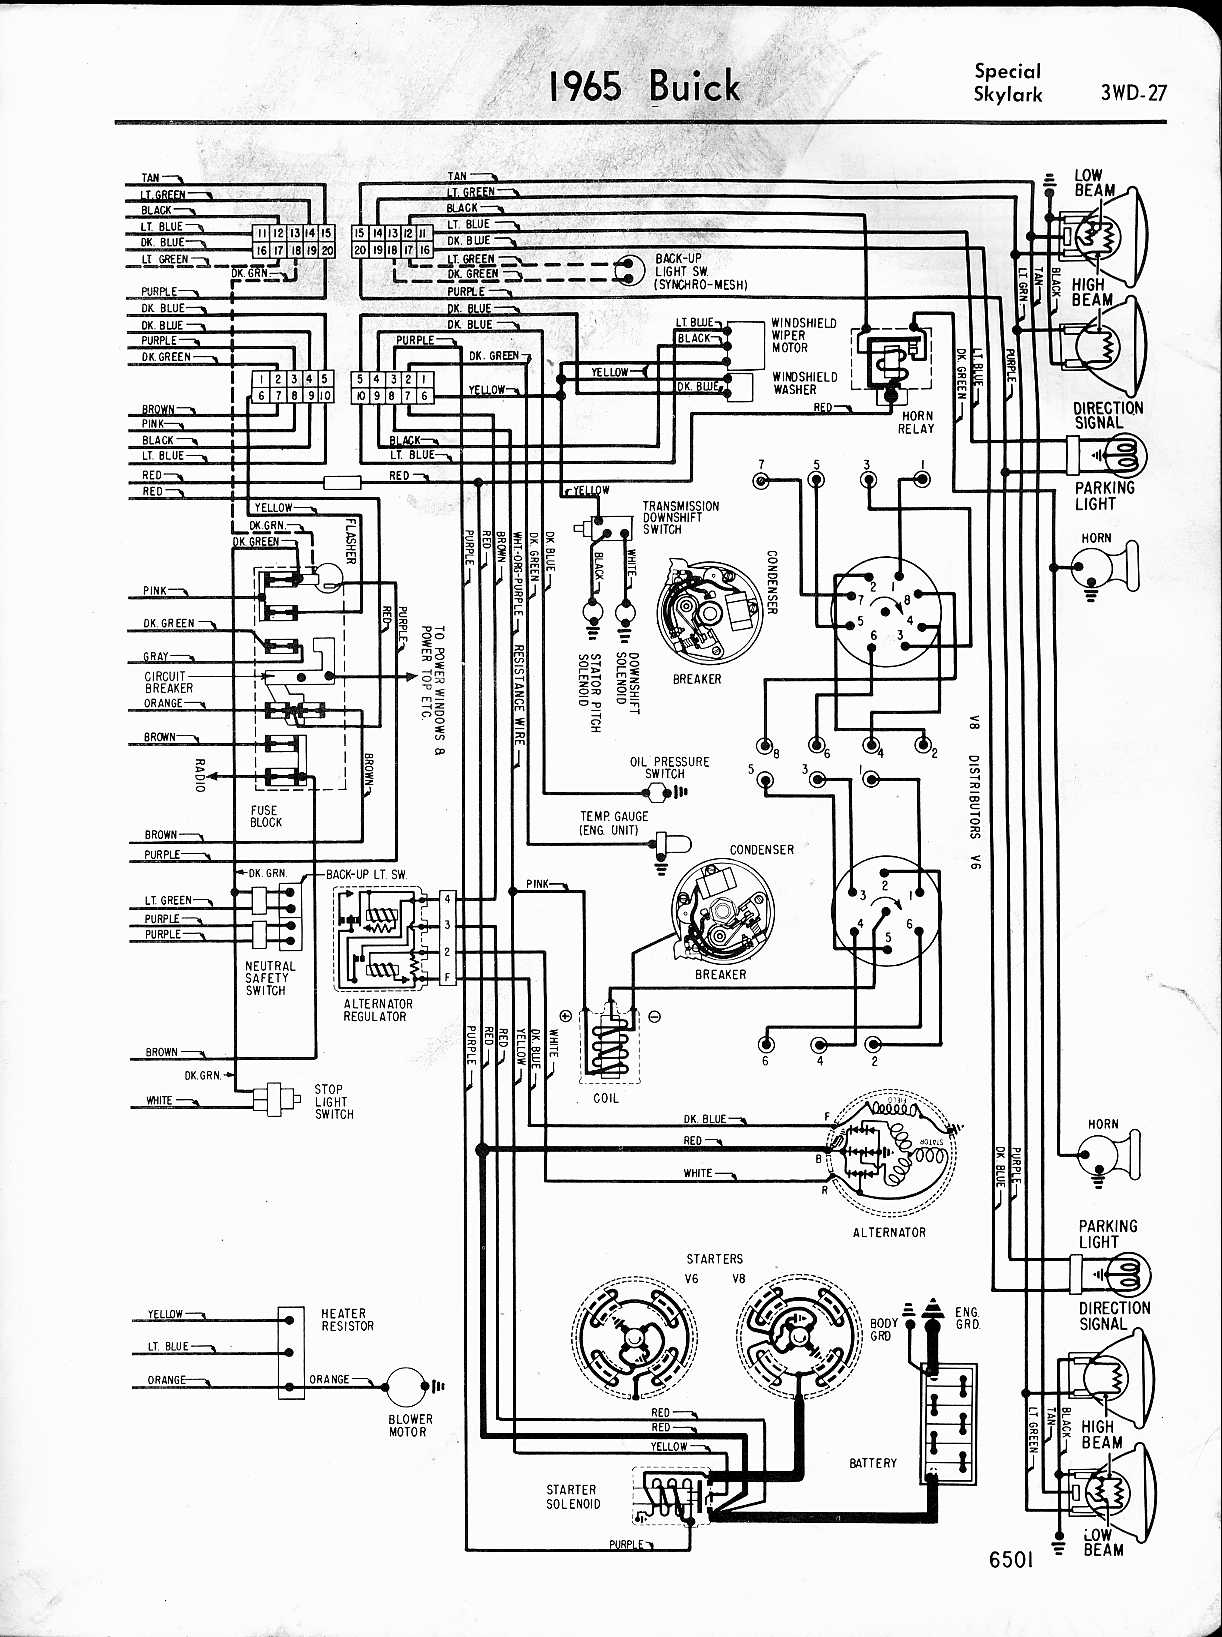 1965 buick wiring diagram experts of wiring diagram u2022 rh evilcloud co  uk 2004 Buick LeSabre Wiring-Diagram Buick Stereo Wiring Diagram